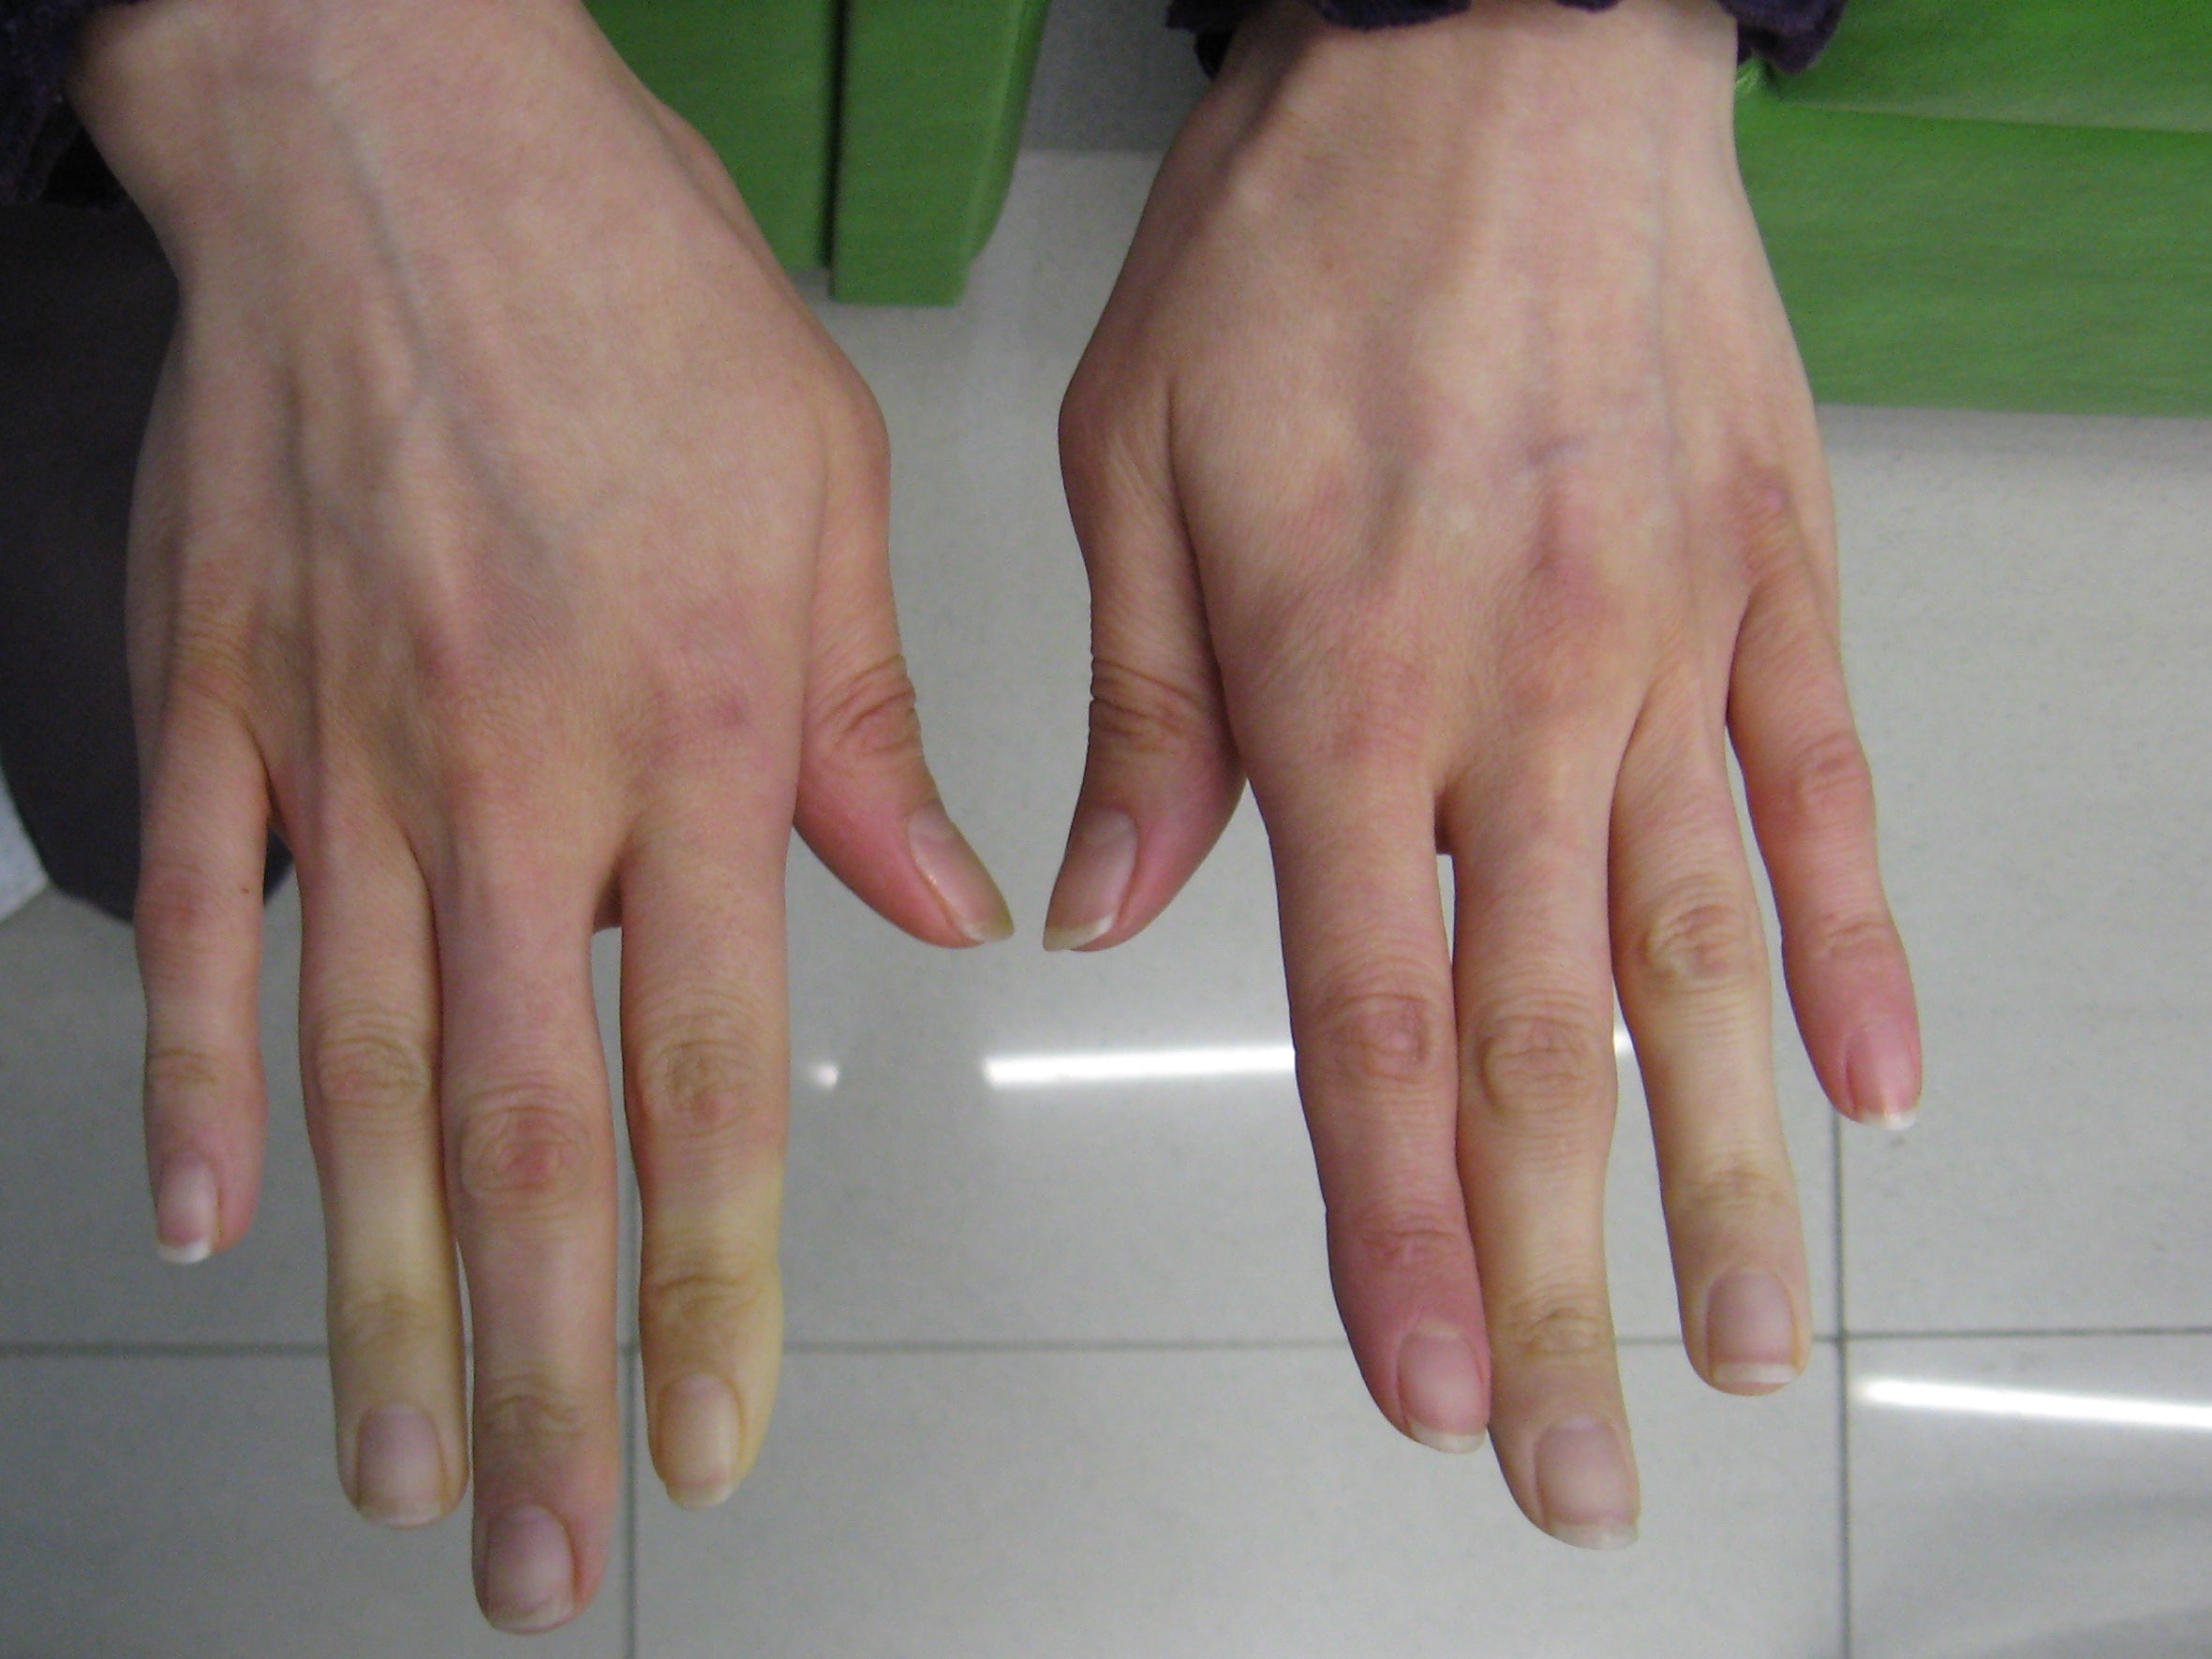 symptoms of raynauds disease